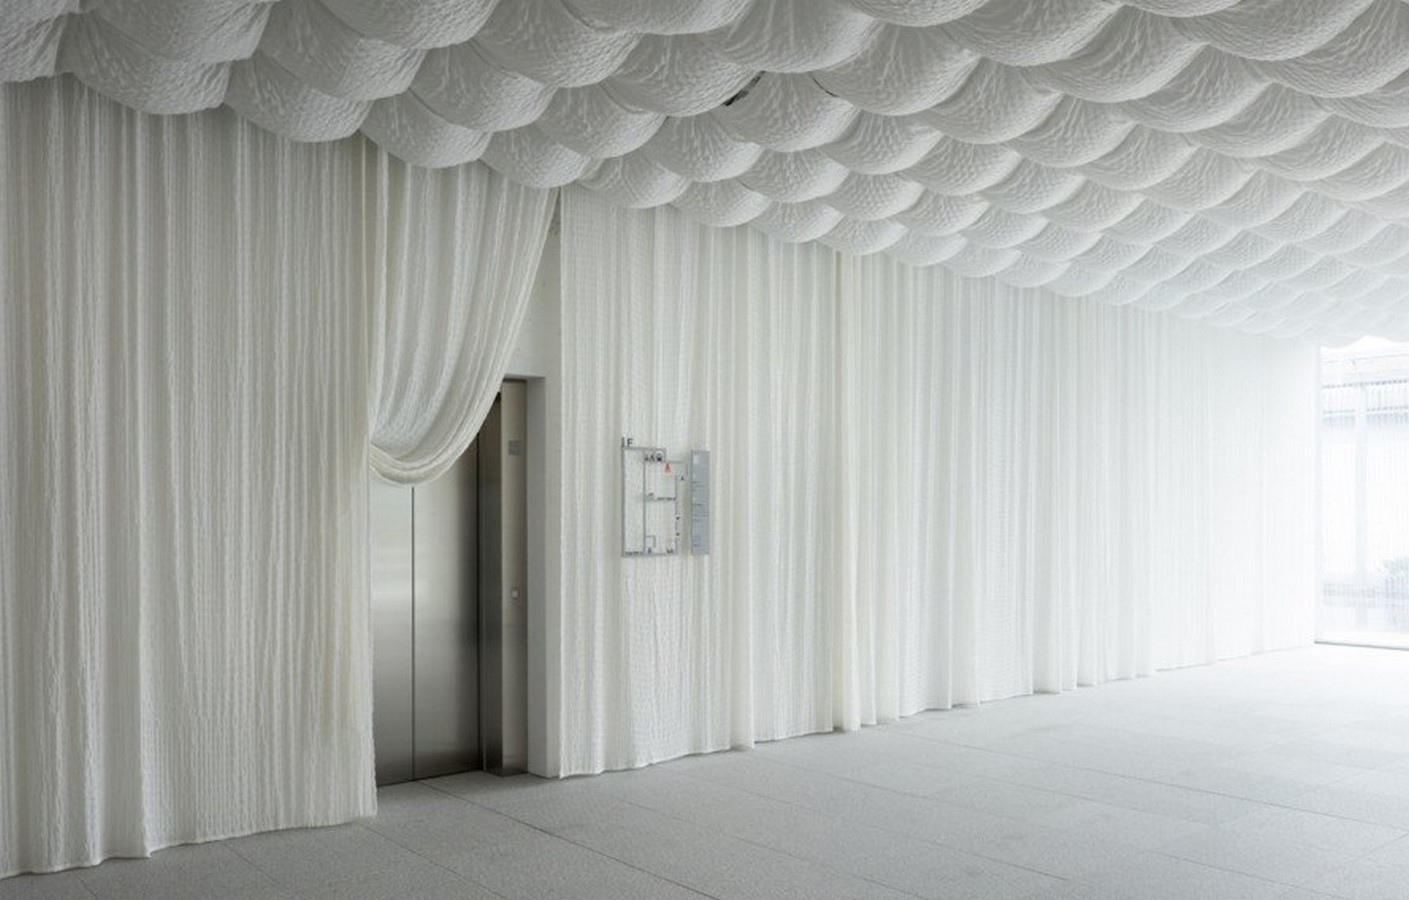 An earthquake-resistant building constructed with the world's lightest anti-seismic reinforcement revealed by Kengo Kuma - Sheet8